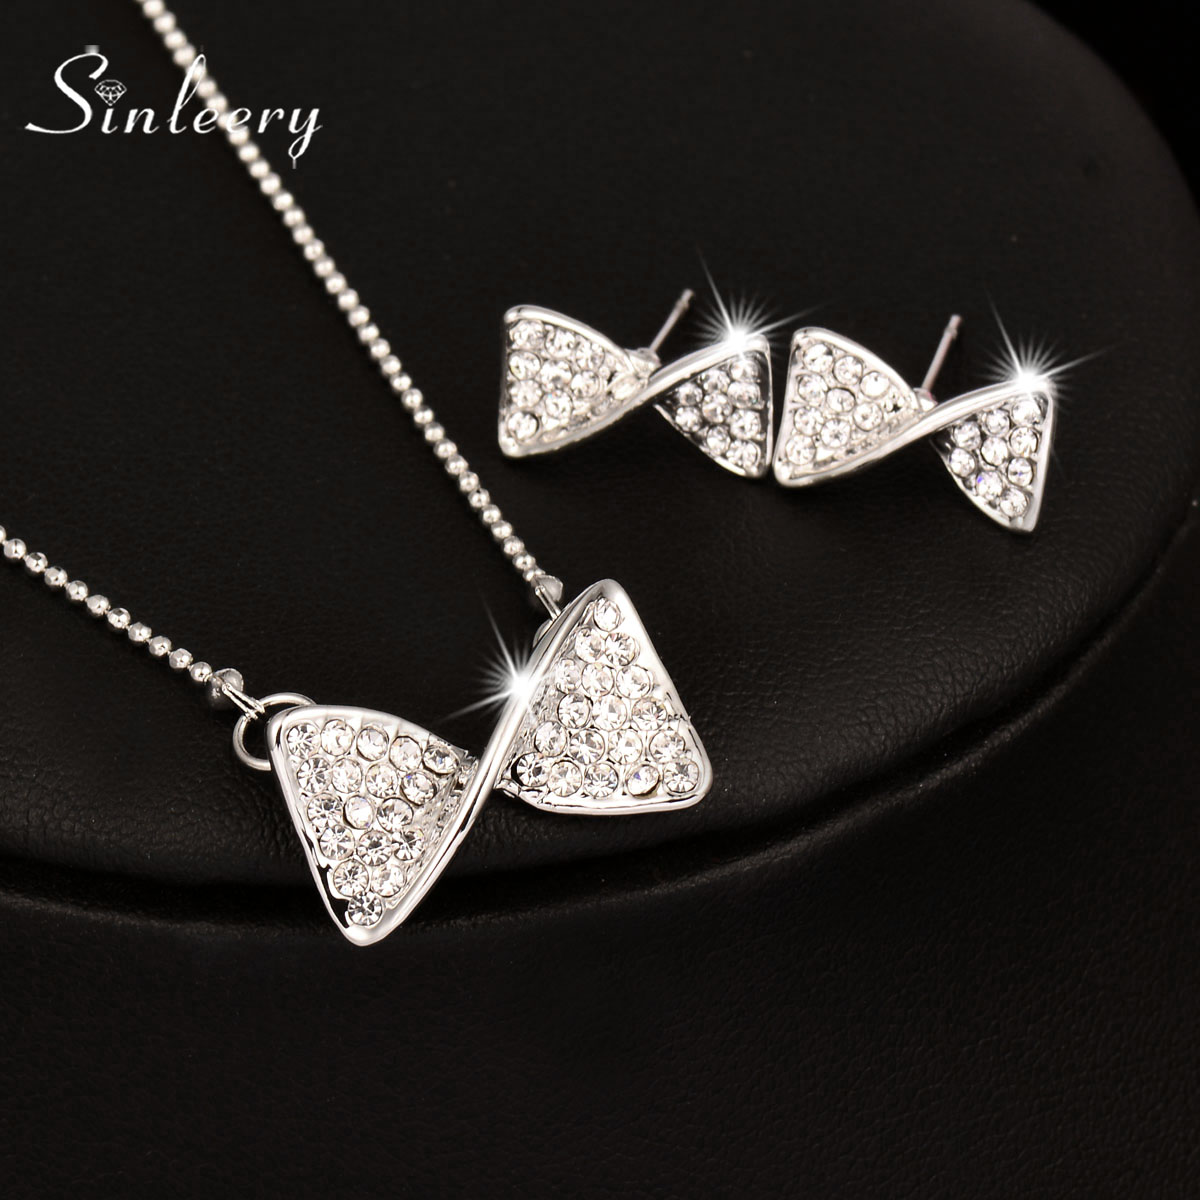 Sparkling Cubic Zirconia Bow Jewelry Sets Silver Color Bowknot Necklace Earrings